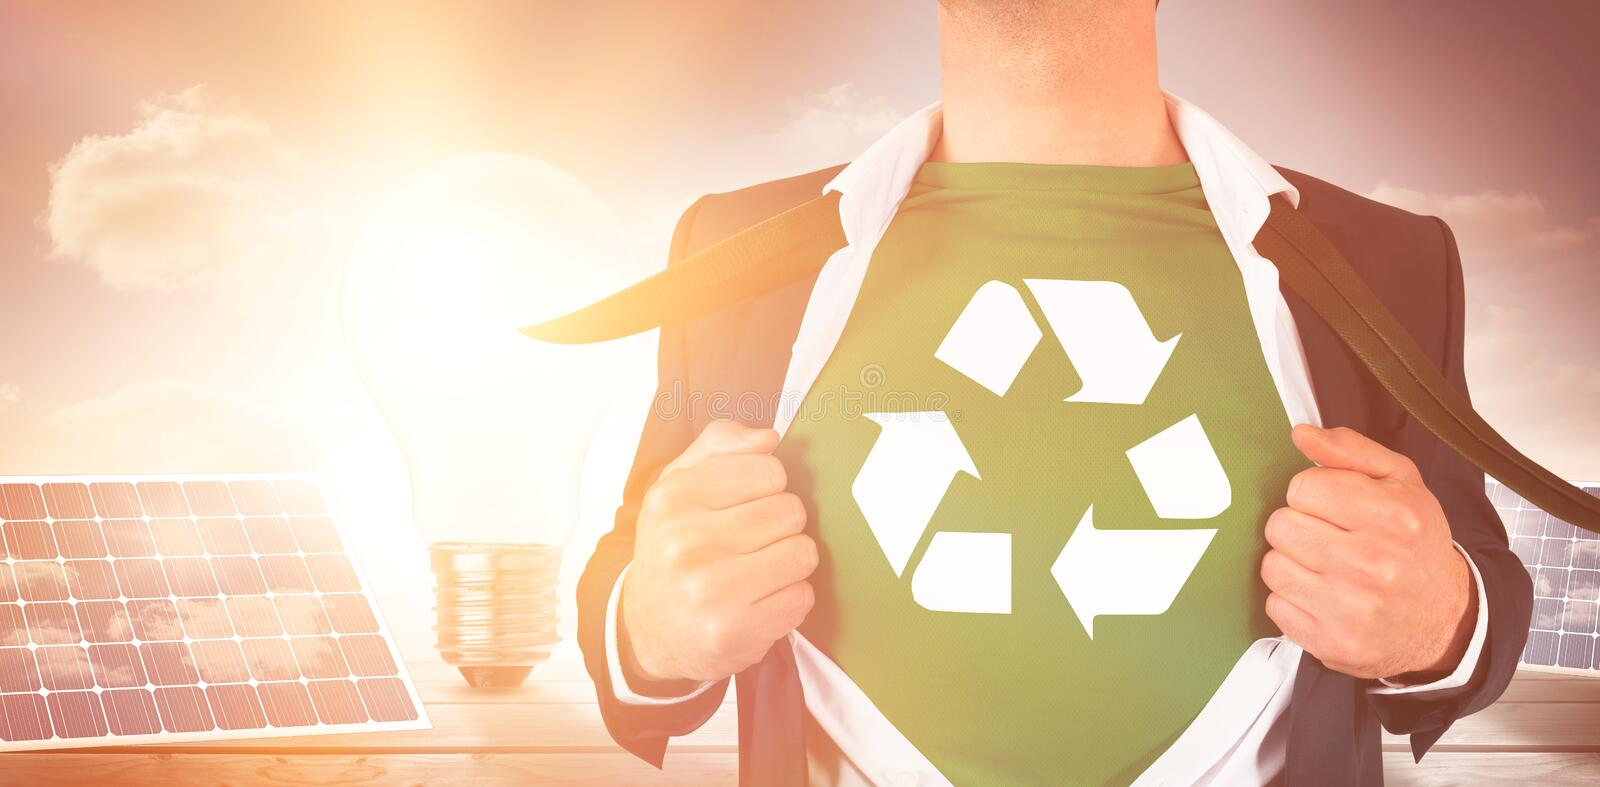 Businessman opening shirt in superhero style stock image